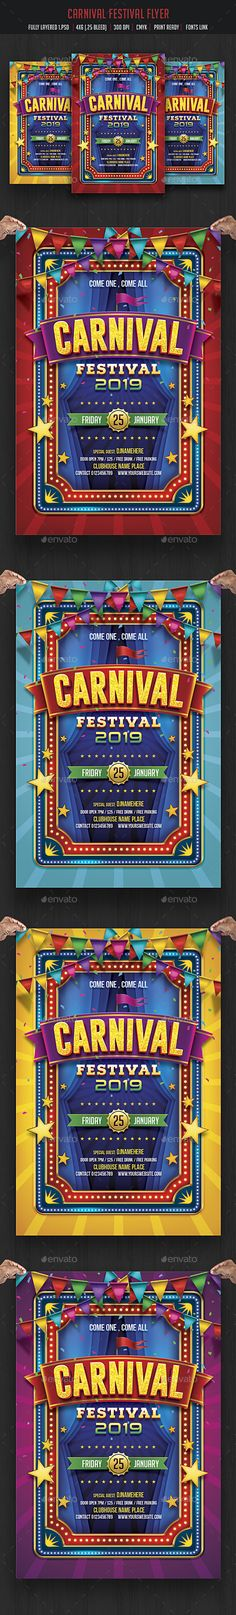 Carnival & Fun Fair Flyer Design Template - Events Flyers Template PSD. Download here: https://graphicriver.net/item/carnival-fun-fair-flyer/17011770?s_rank=89&ref=yinkira